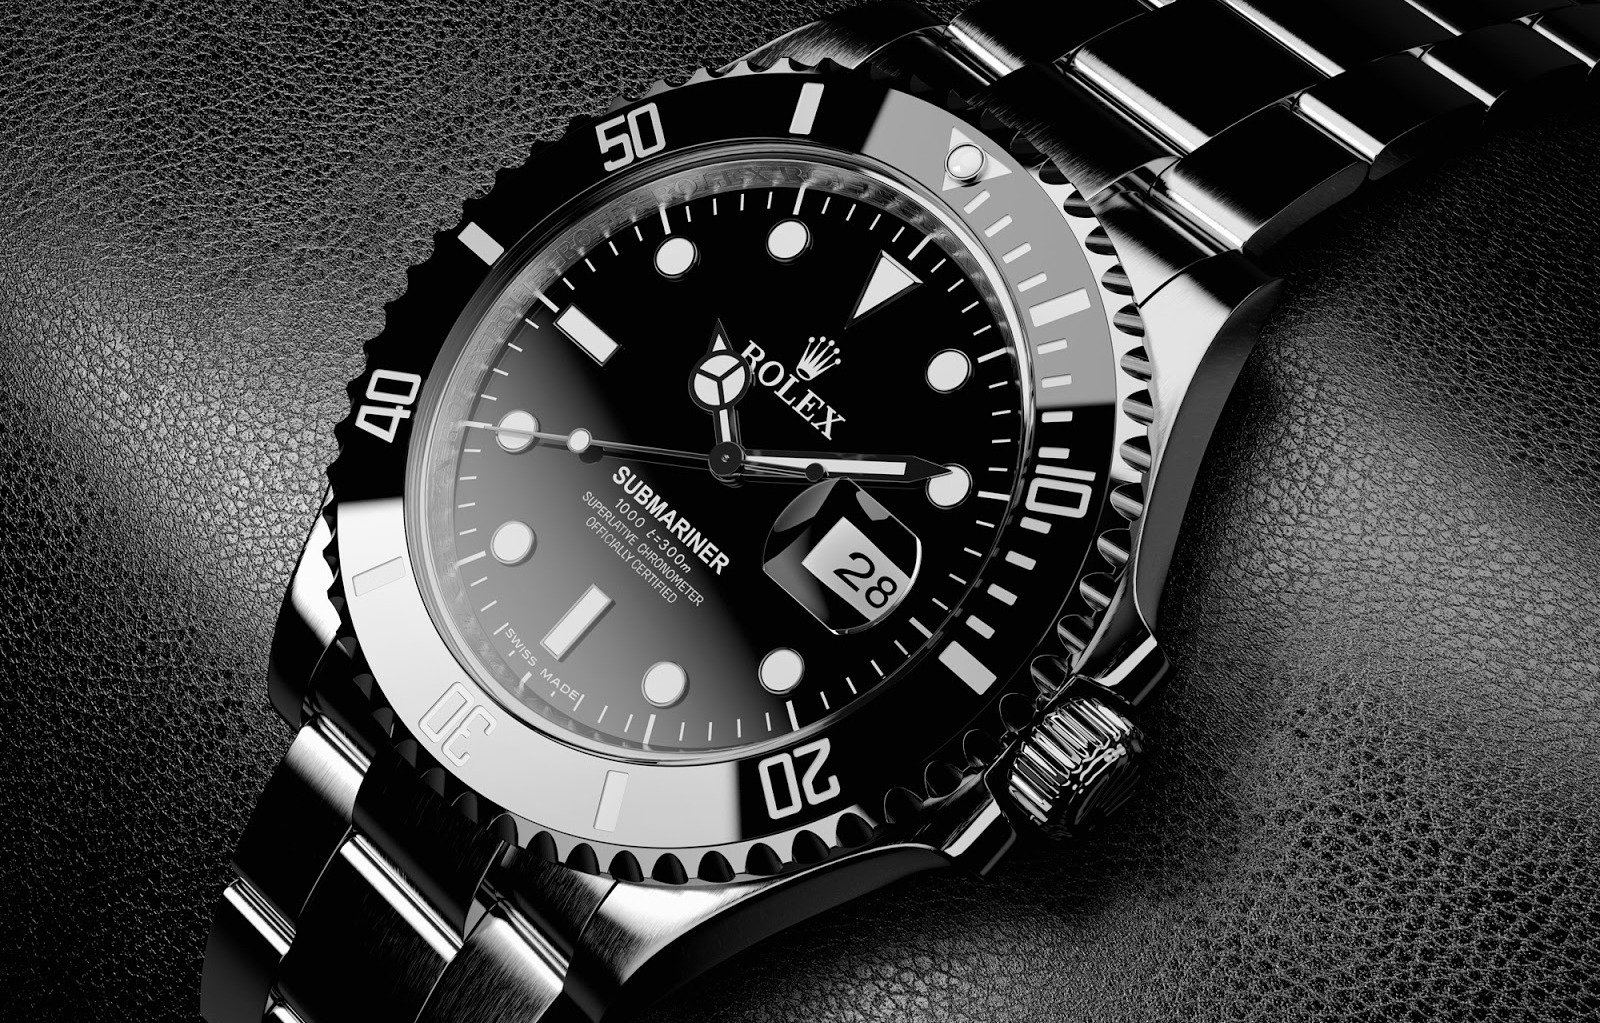 Top 8 mind blowing facts about Rolex Watches (2017)